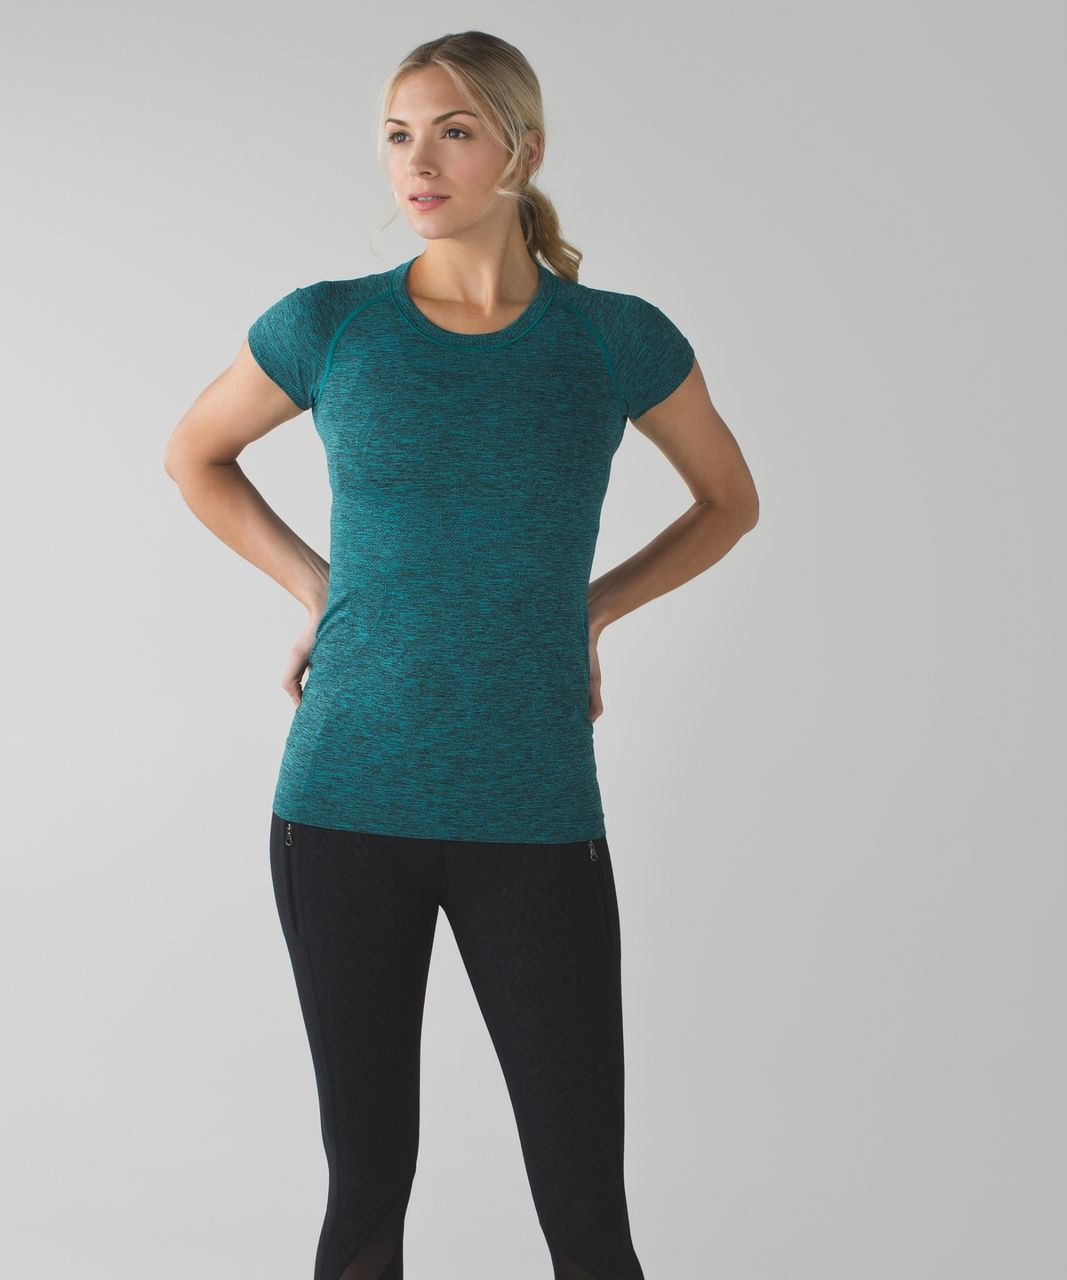 Lululemon Swiftly Tech Short Sleeve Crew - Heathered Peacock